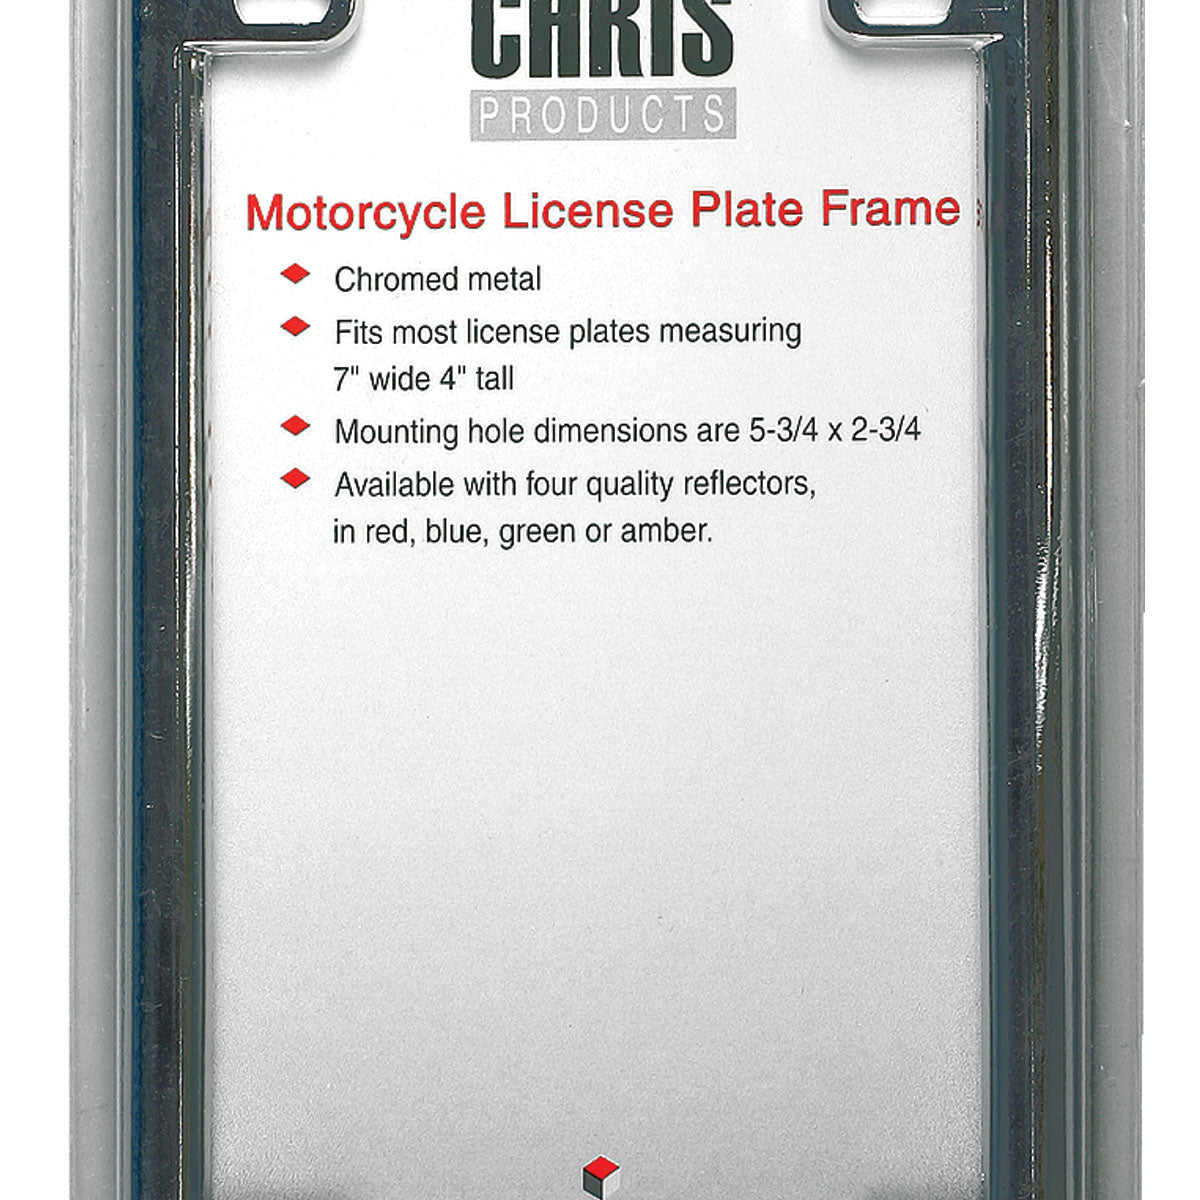 Hot Leathers Motorcycle License Plate Frame